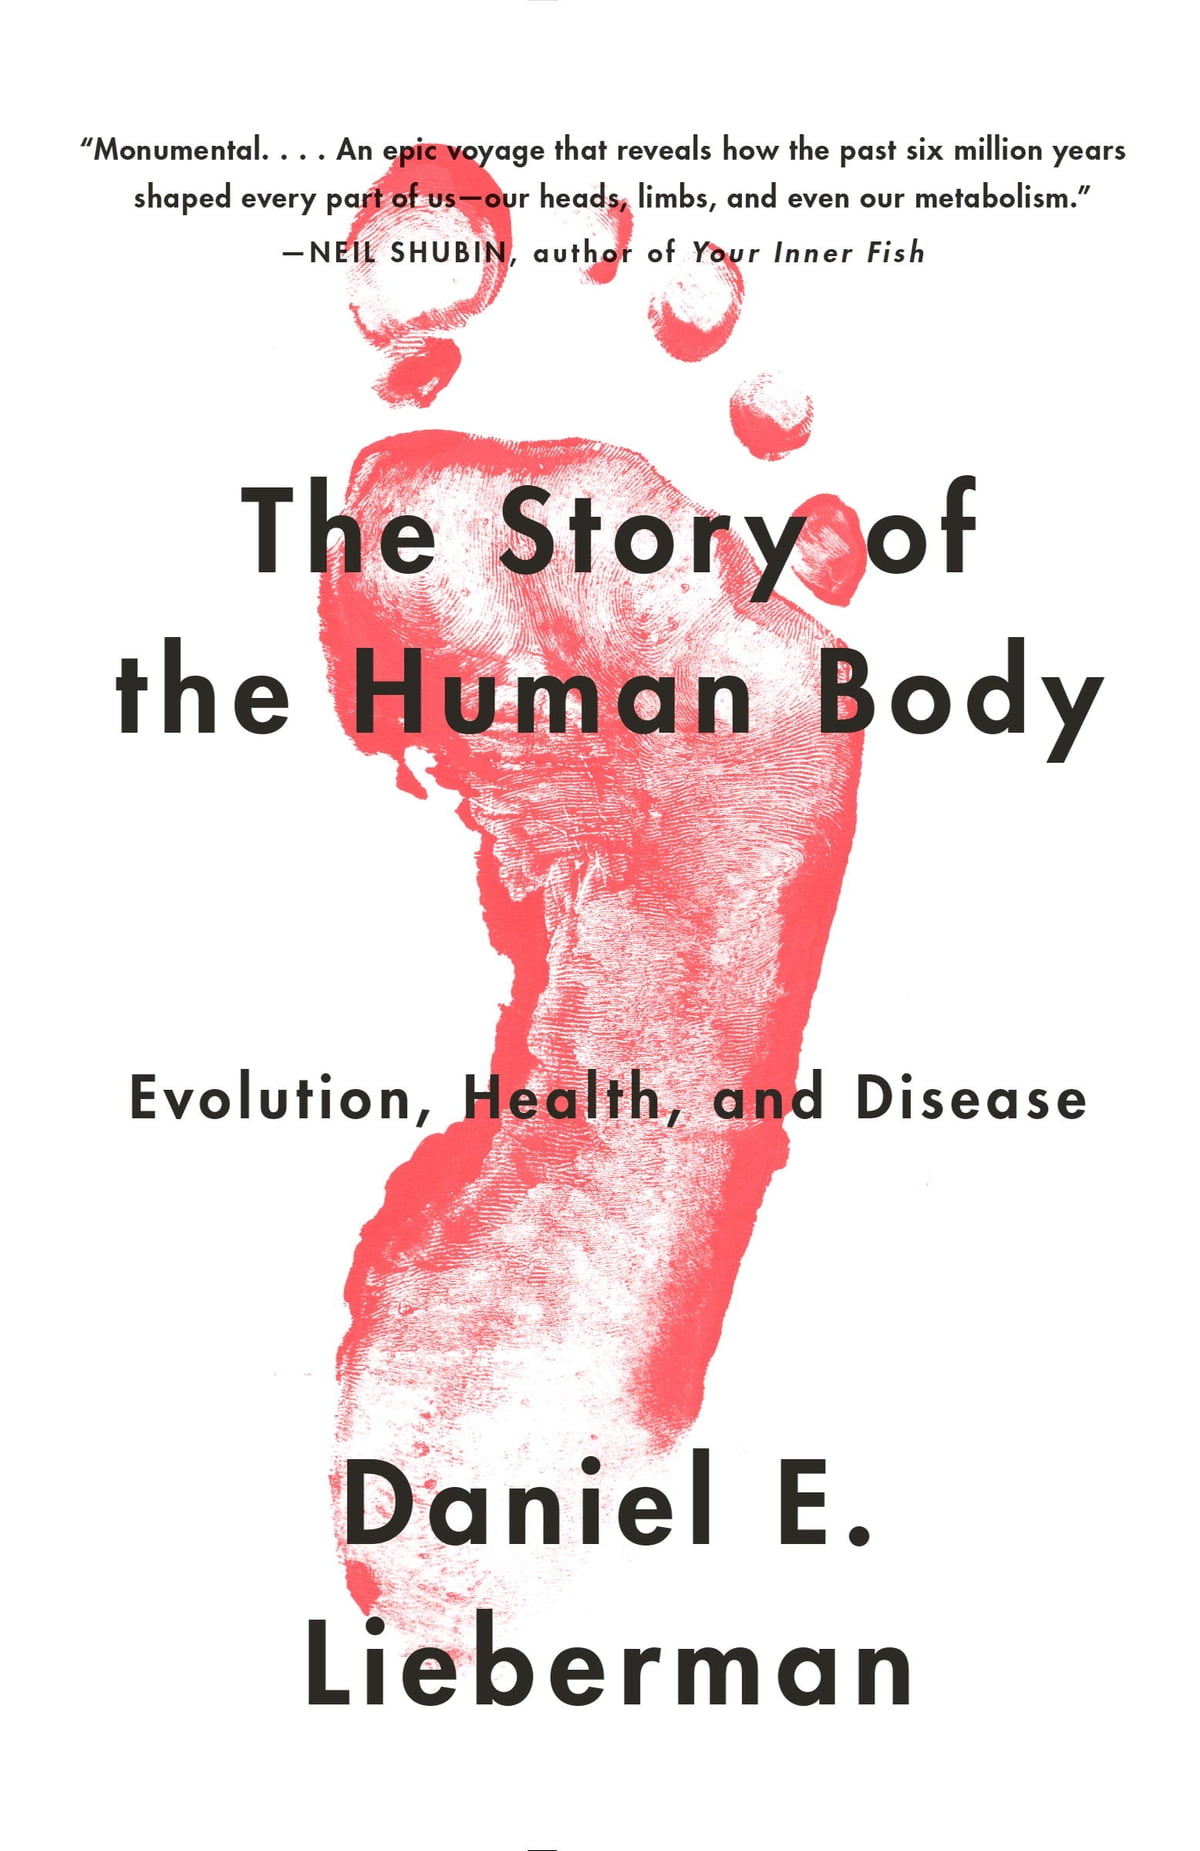 the evolution of humans and its predecessors in the story of the human body a book by daniel lieberm In his new book, the story of the human body, daniel leiberman attempts to explain why humanity's physical form has developed the way it has developed menu making well-read sense of the world.